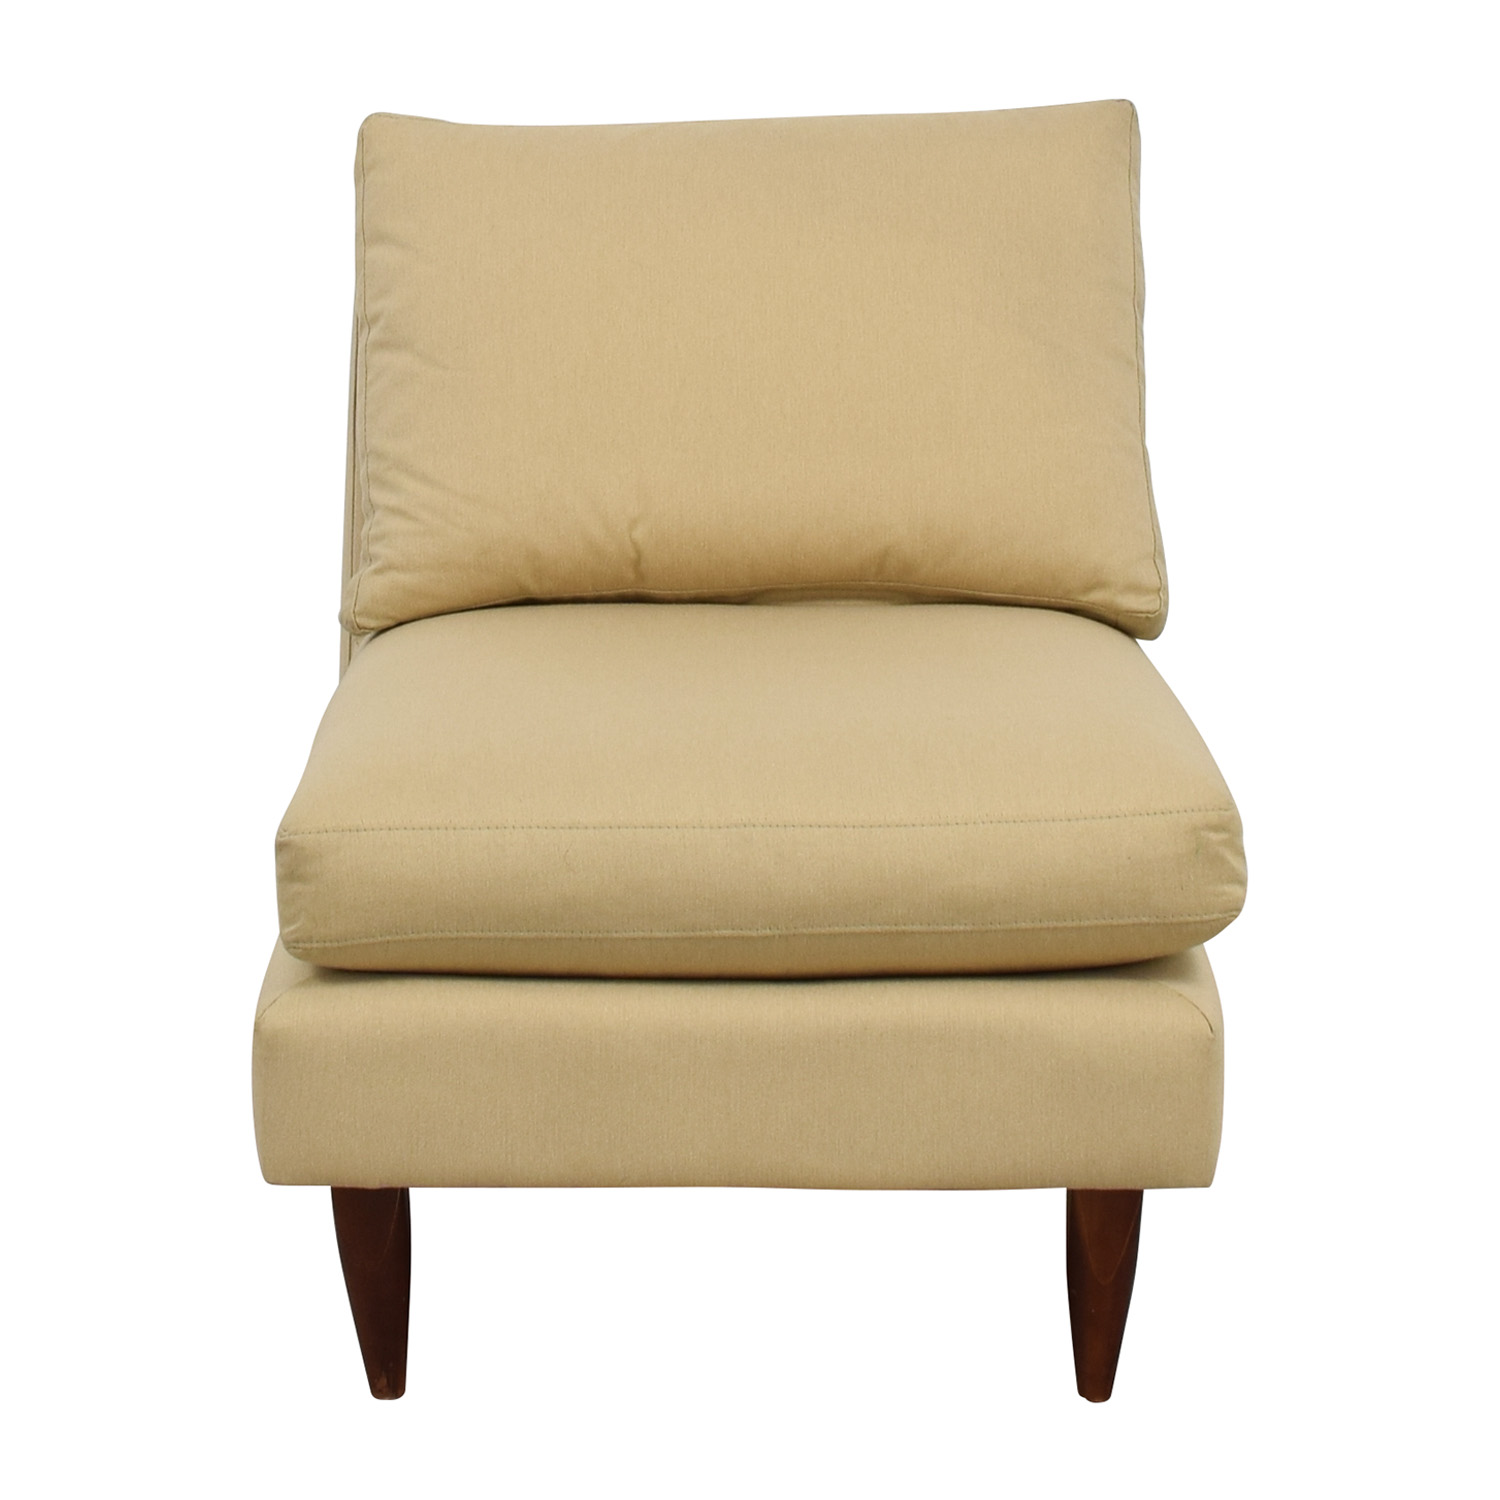 Room & Board Room & Board Beige Slipper Chair second hand